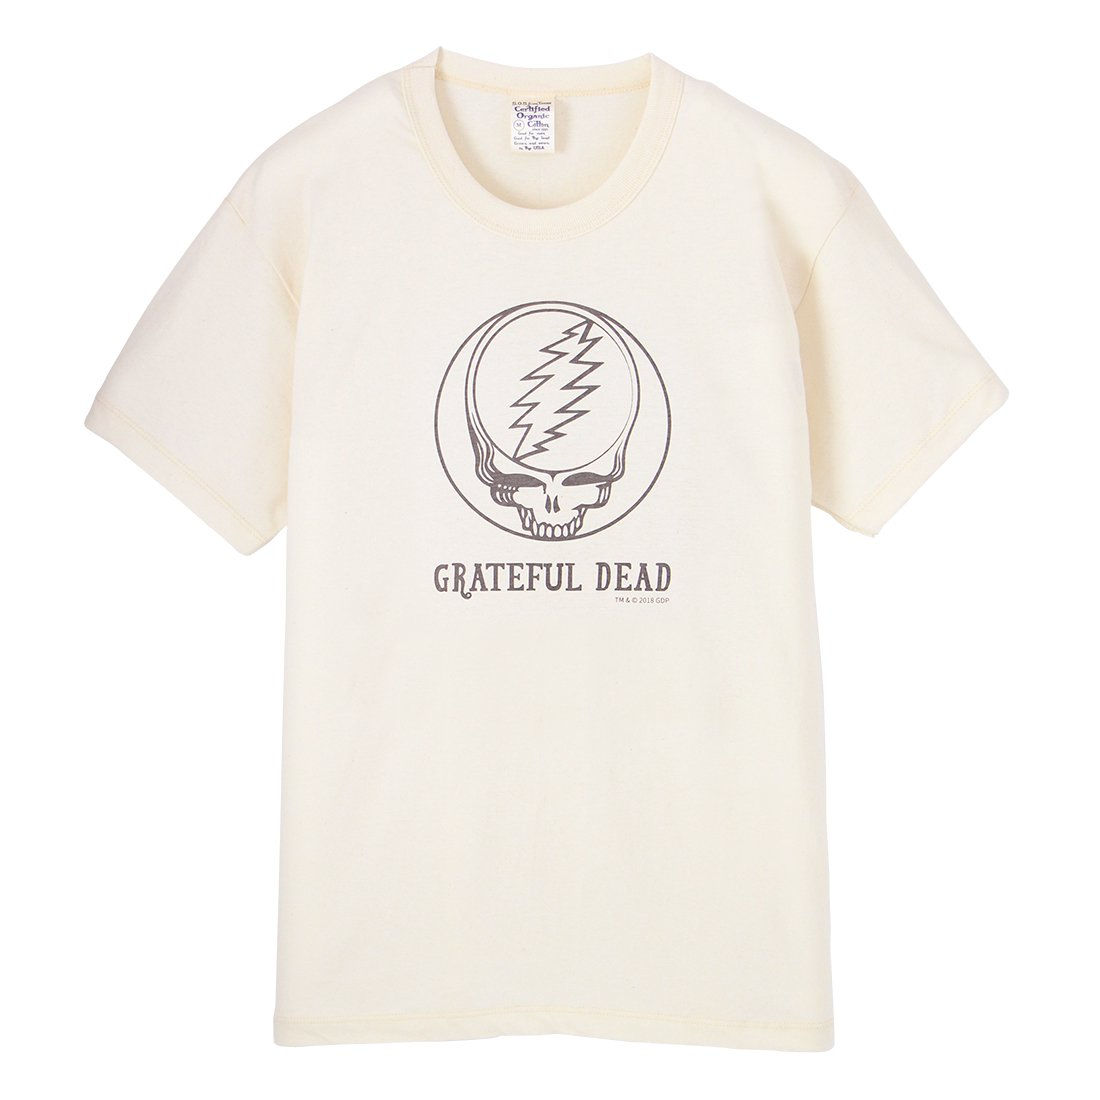 S.O.S. from Texas×GRATEFUL DEAD Short Sleeve Crew Tee